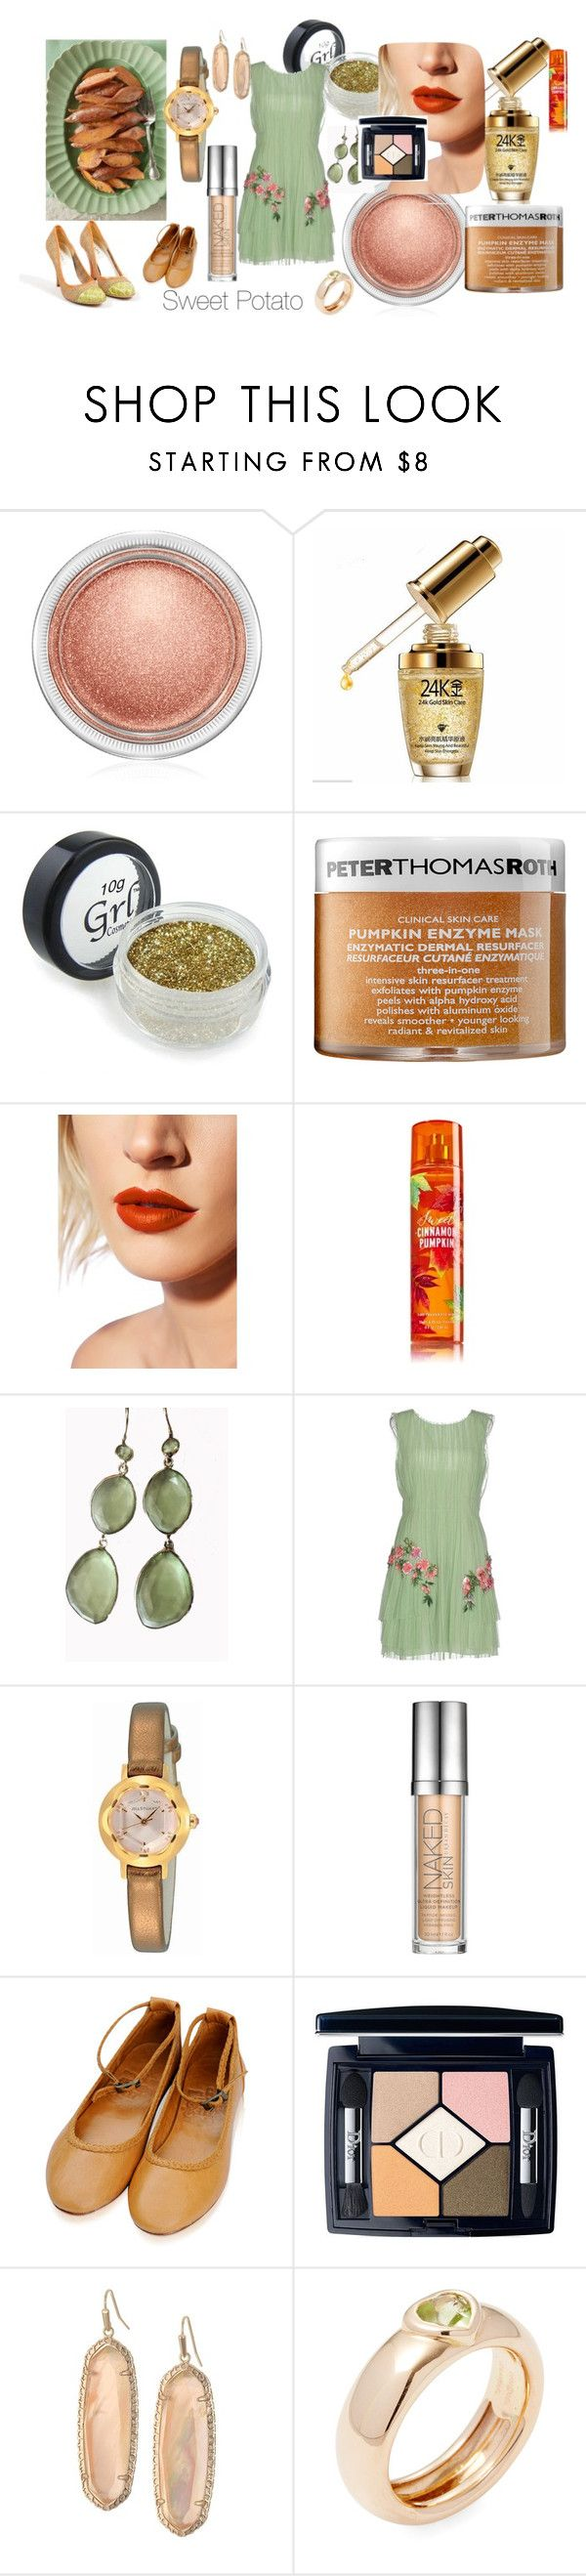 """Sweet Potato"" by fab-dallas ❤ liked on Polyvore featuring MAC Cosmetics, Peter Thomas Roth, Lime Crime, Blue Candy Jewelry, Alberta Ferretti, Jill Stuart, Urban Decay, Christian Dior, Kendra Scott and Tiffany & Co."